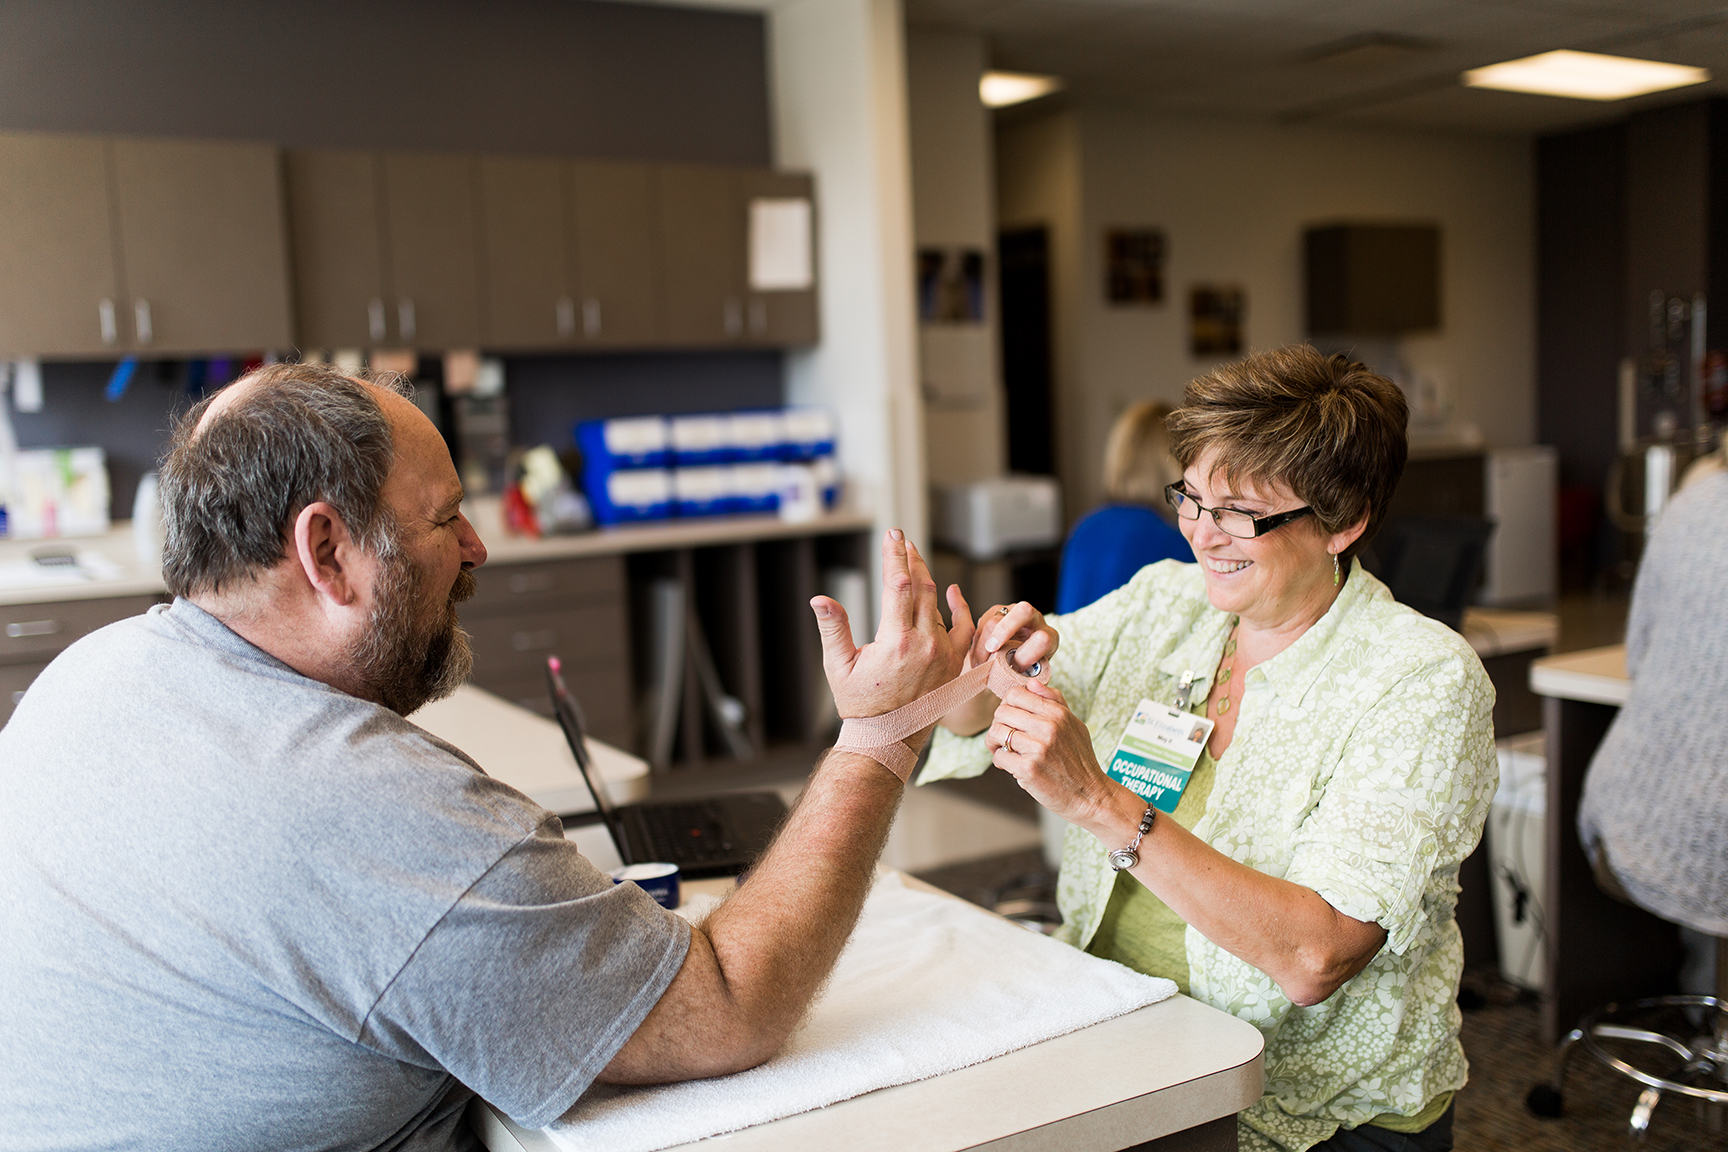 Relieve Thumb Pain with a Joint Replacement | Healthy Headlines